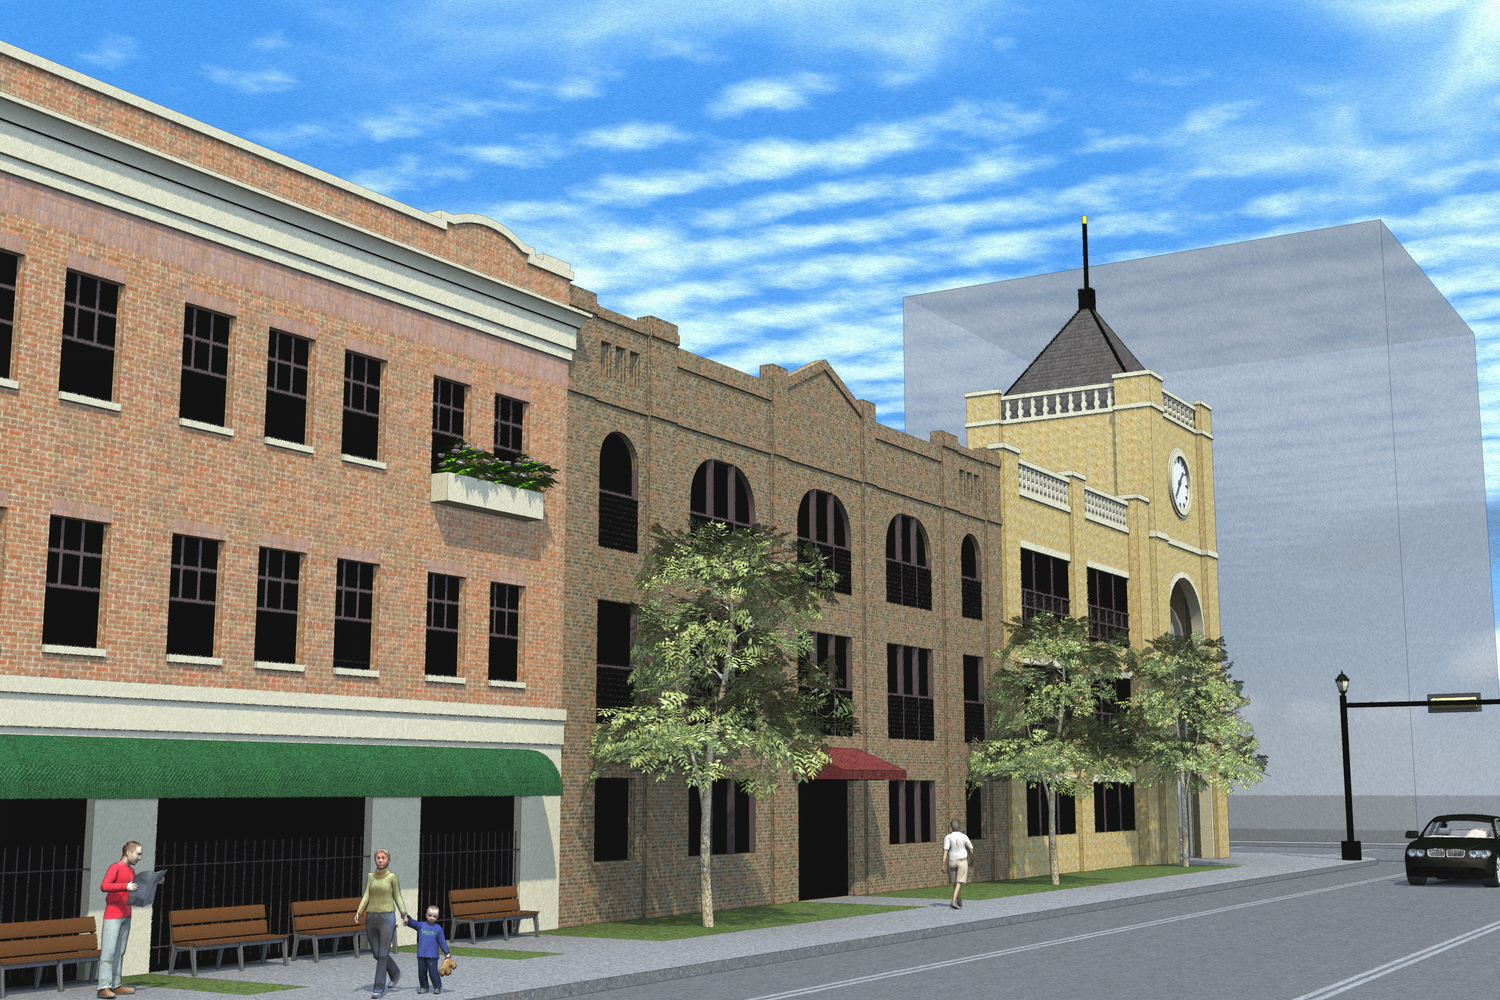 new urbanist parking garage design - east texas commercial architect - mixed use architect tyler - butler architectural group